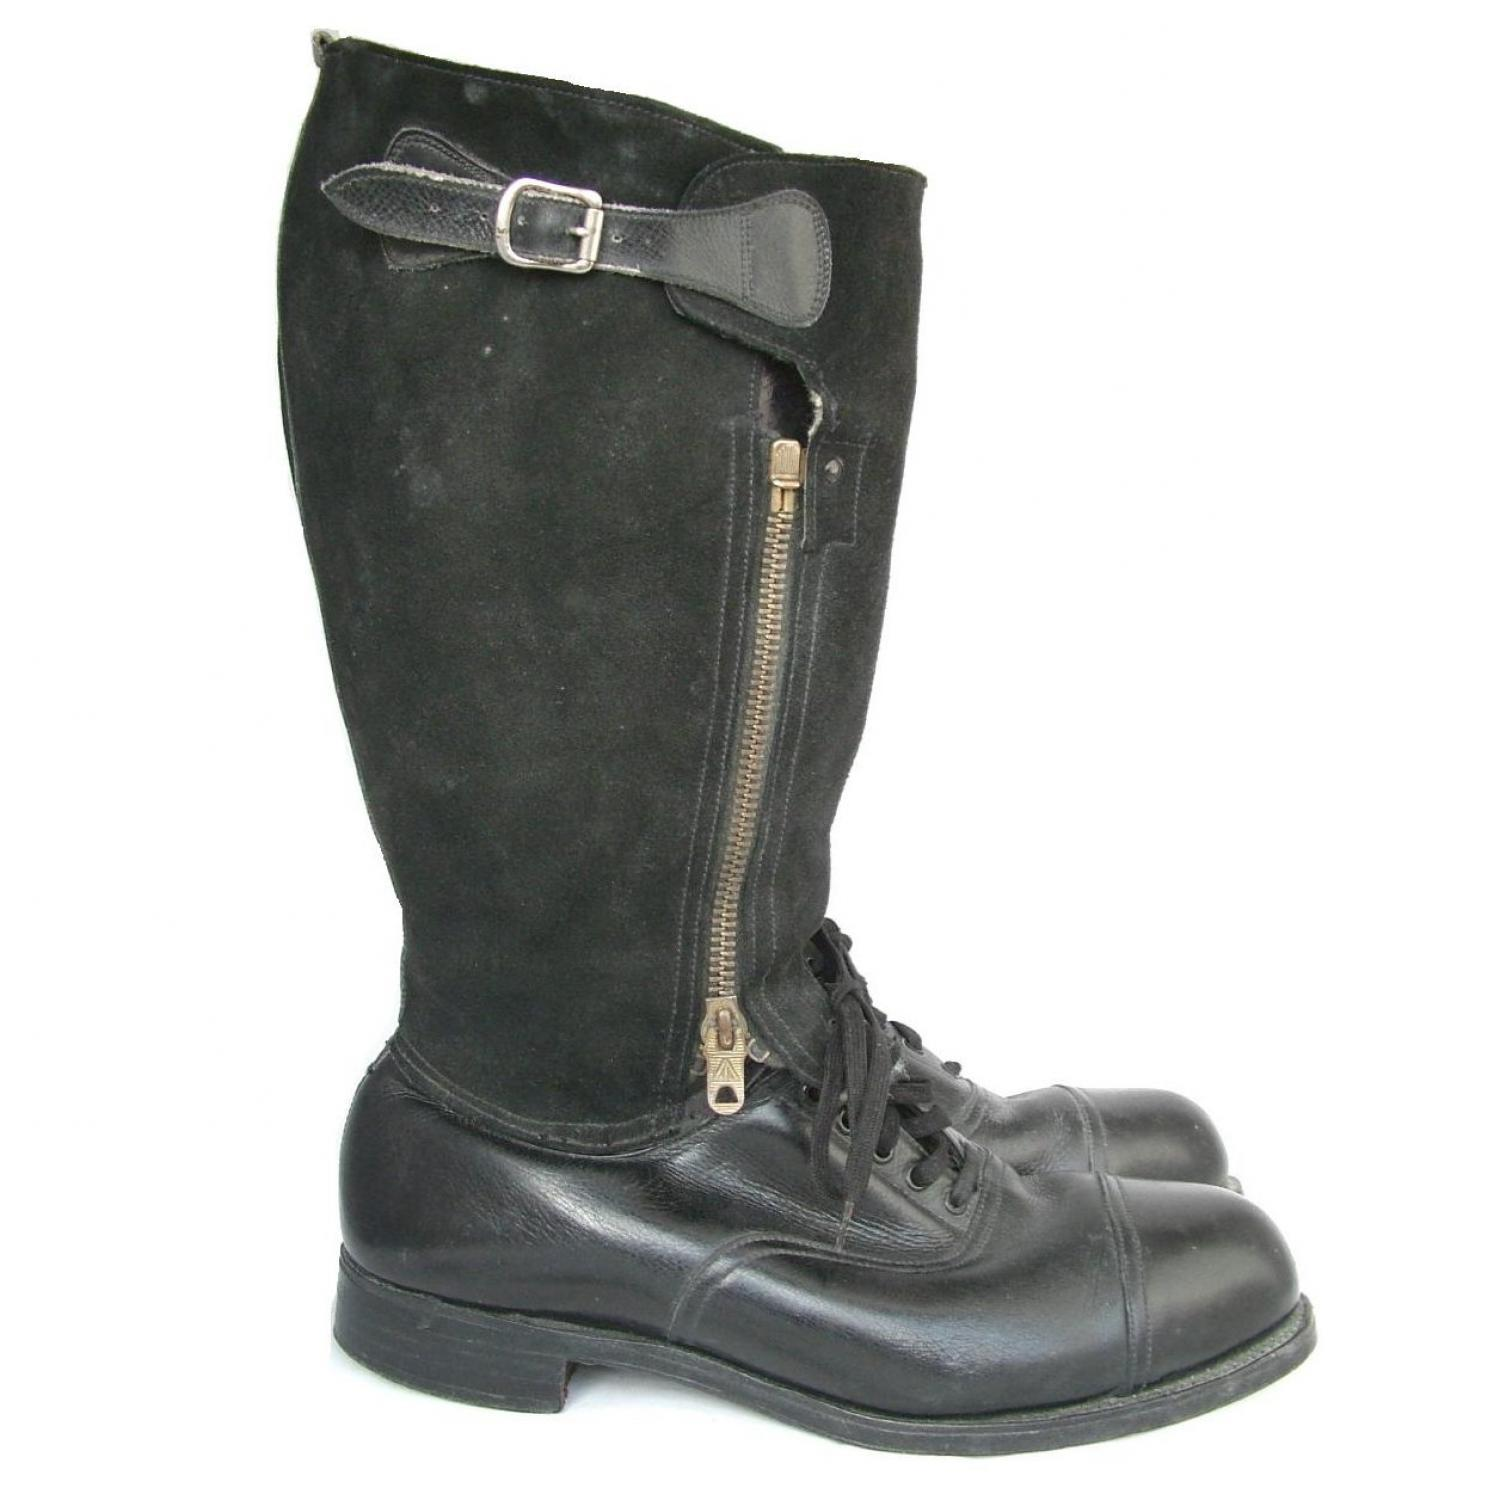 RAF 1943 Pattern Flying Boots, S9